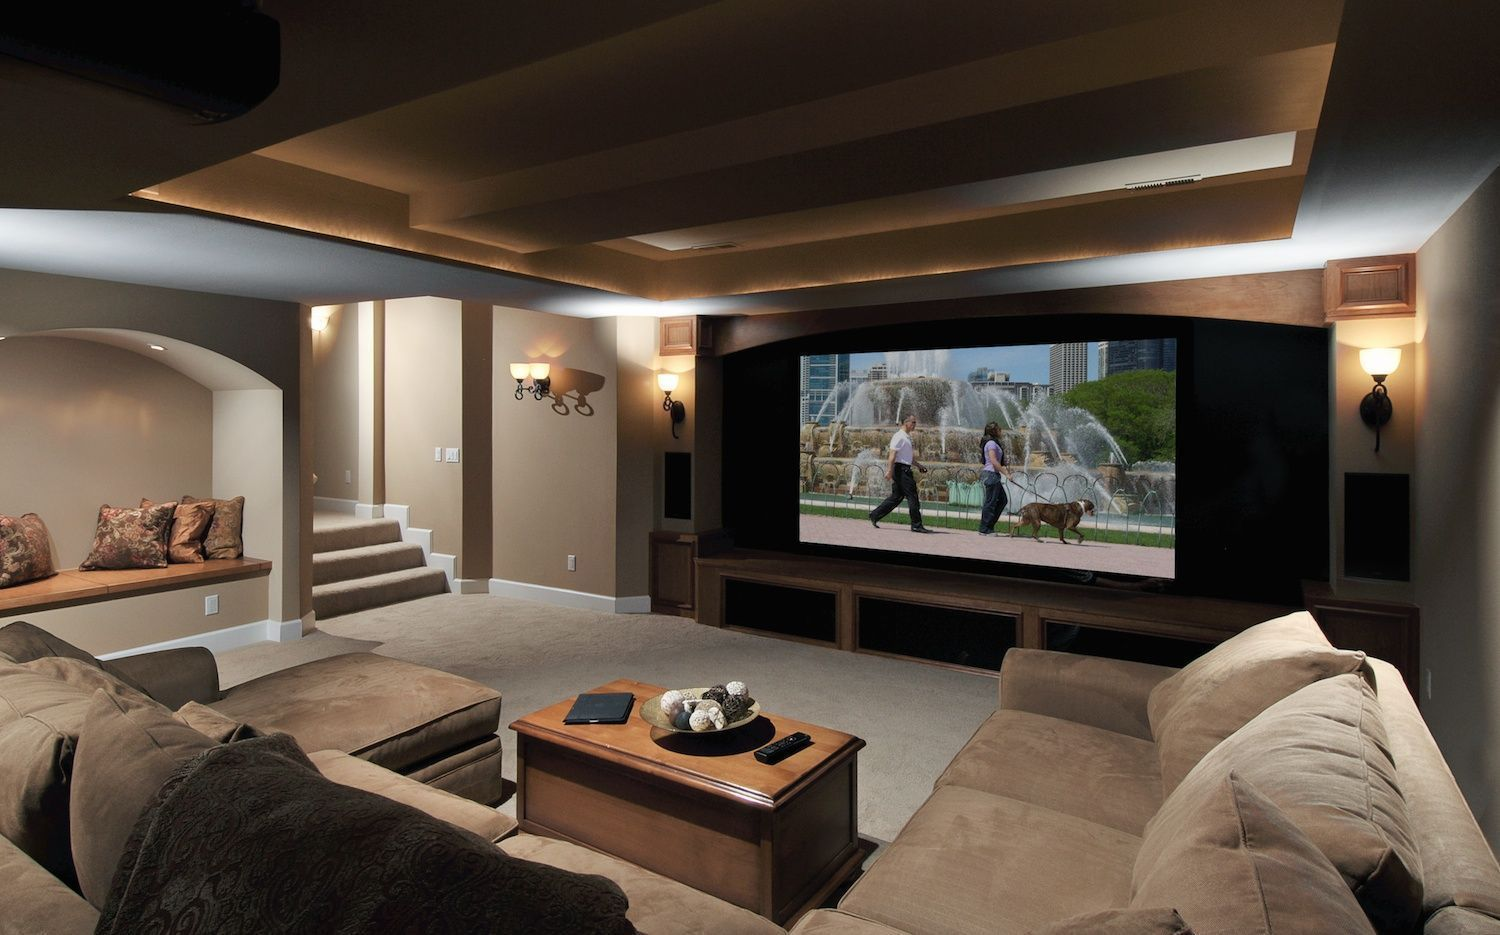 Small Home Theater Design: More Ideas Below: DIY Home Theater Decorations Ideas